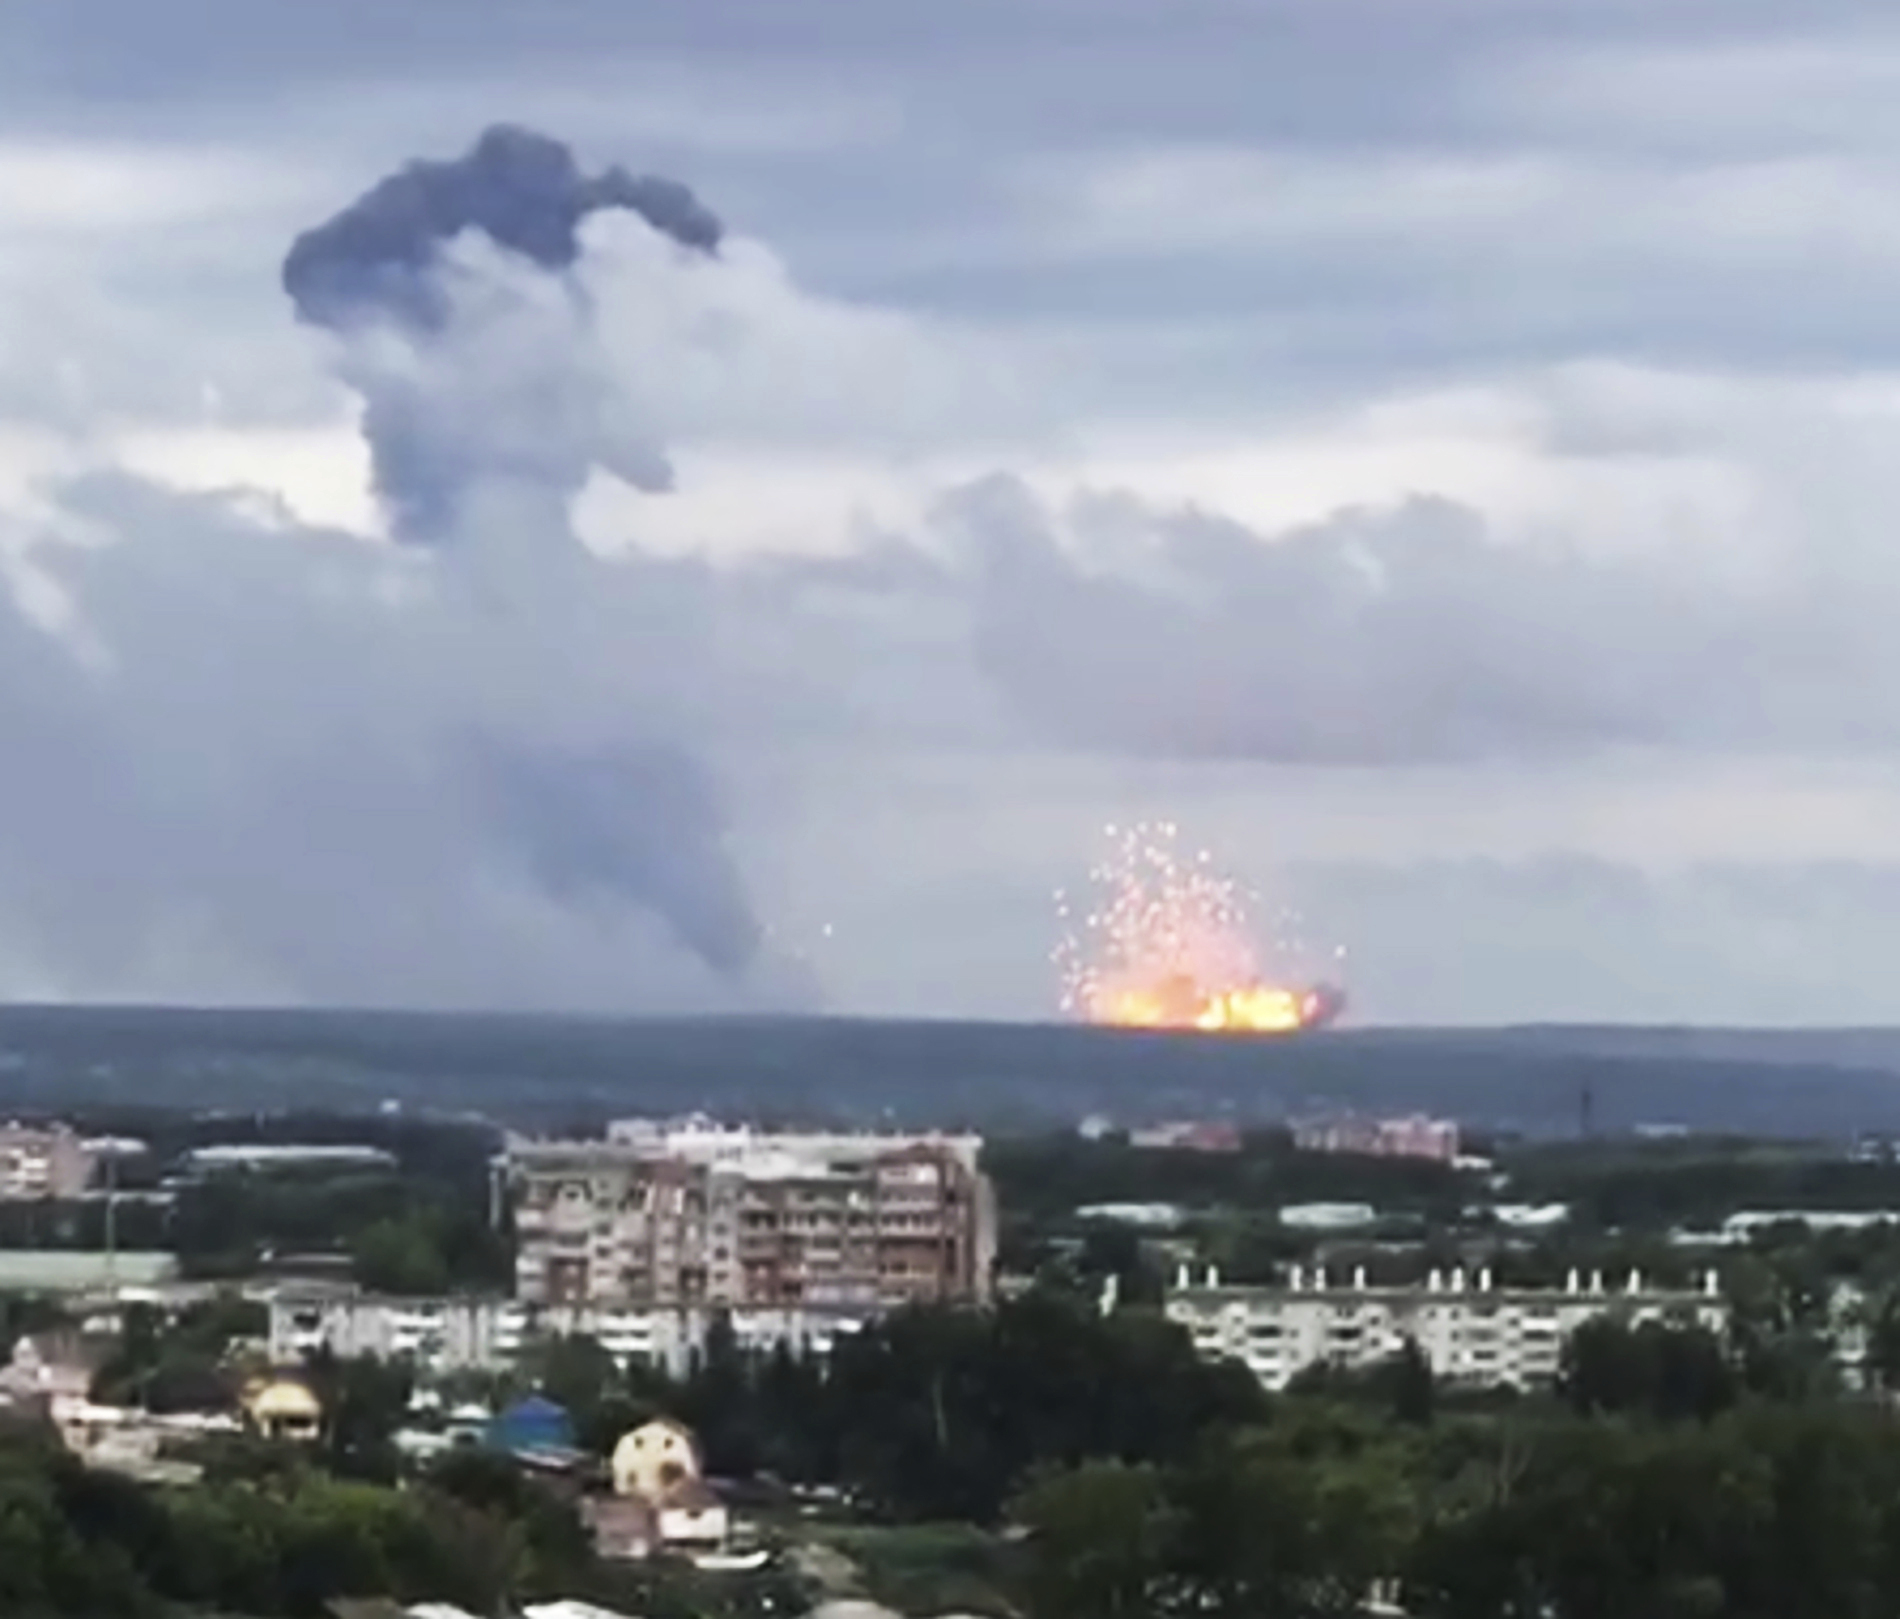 Thousands evacuated after explosions at Russia ammo depot